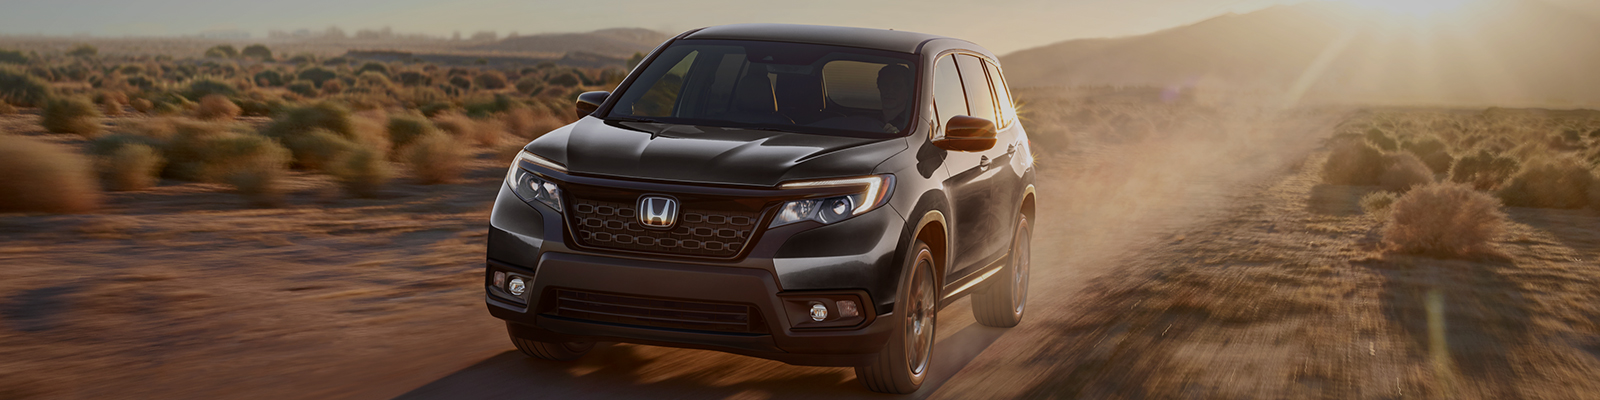 Side view of a 2021 Honda Passport In motion